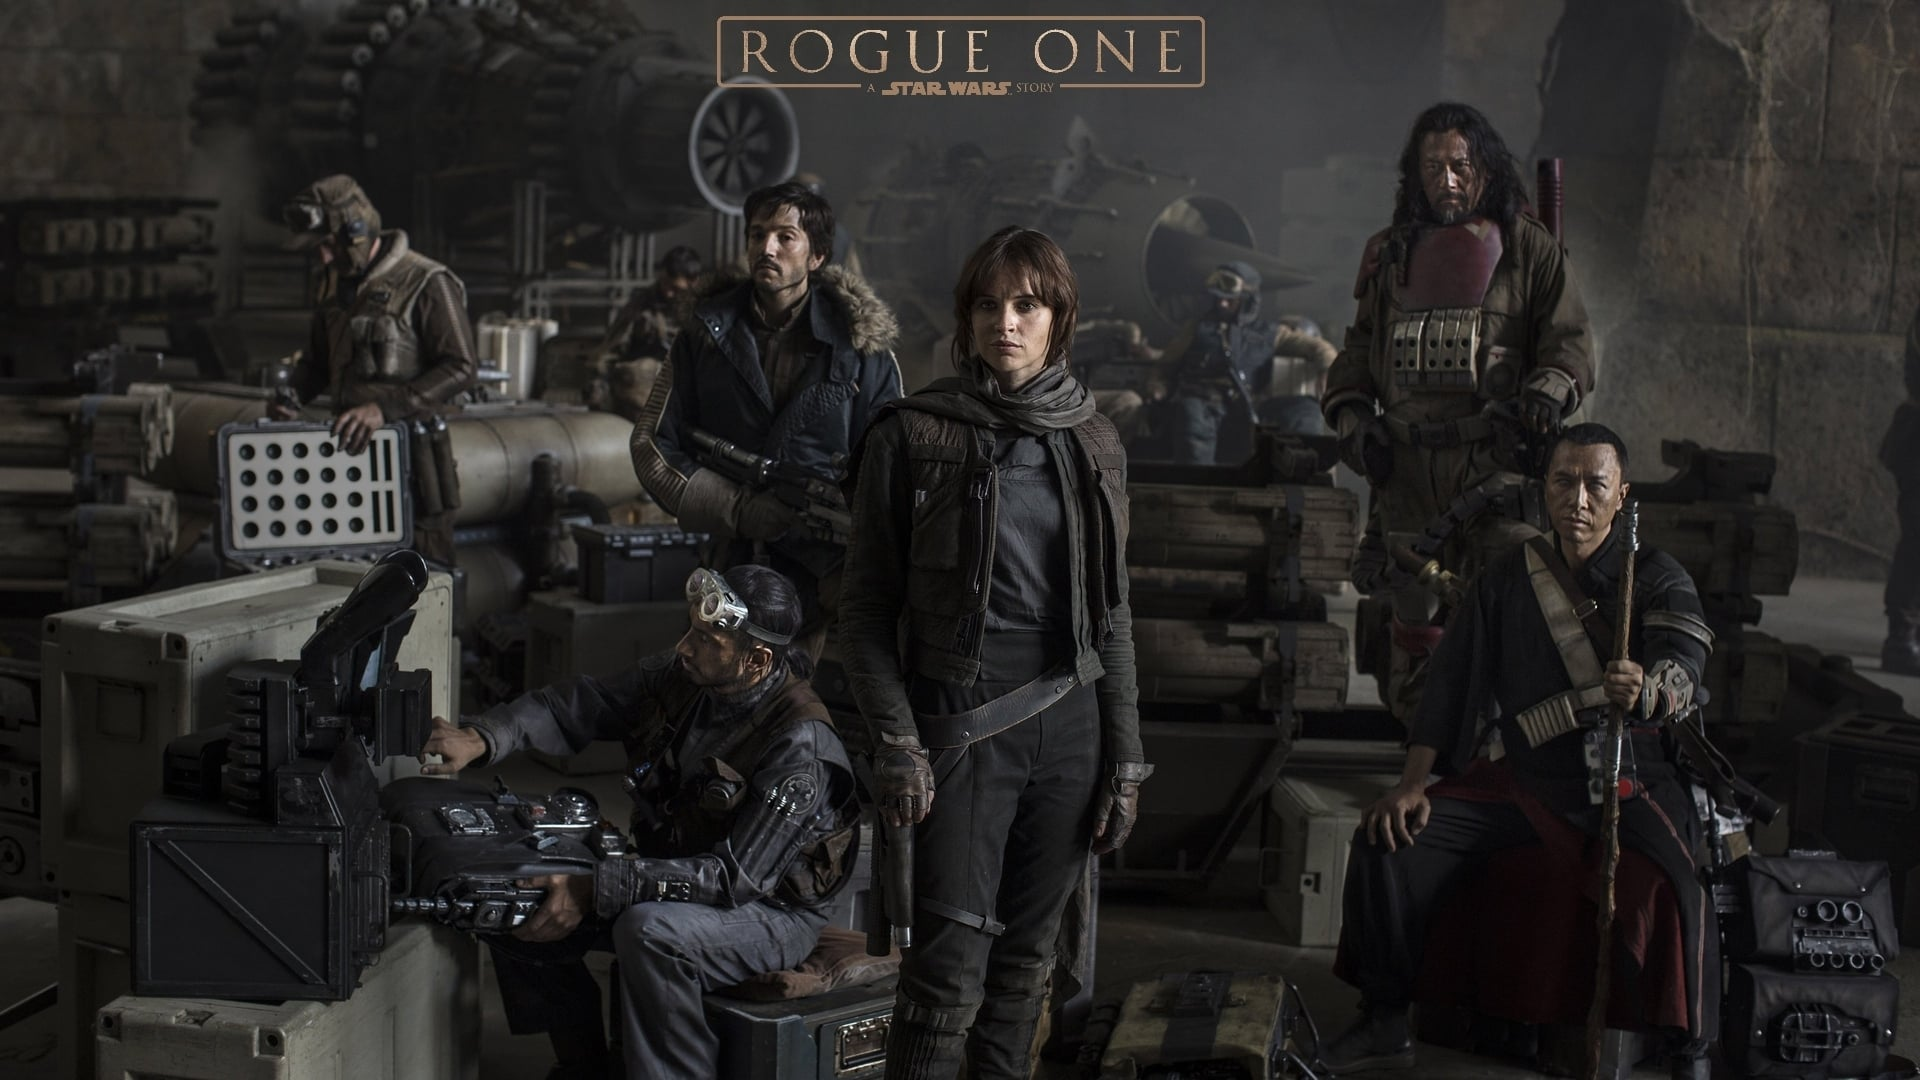 Free Watch Rogue One: A Star Wars Story 2016 Online Movie